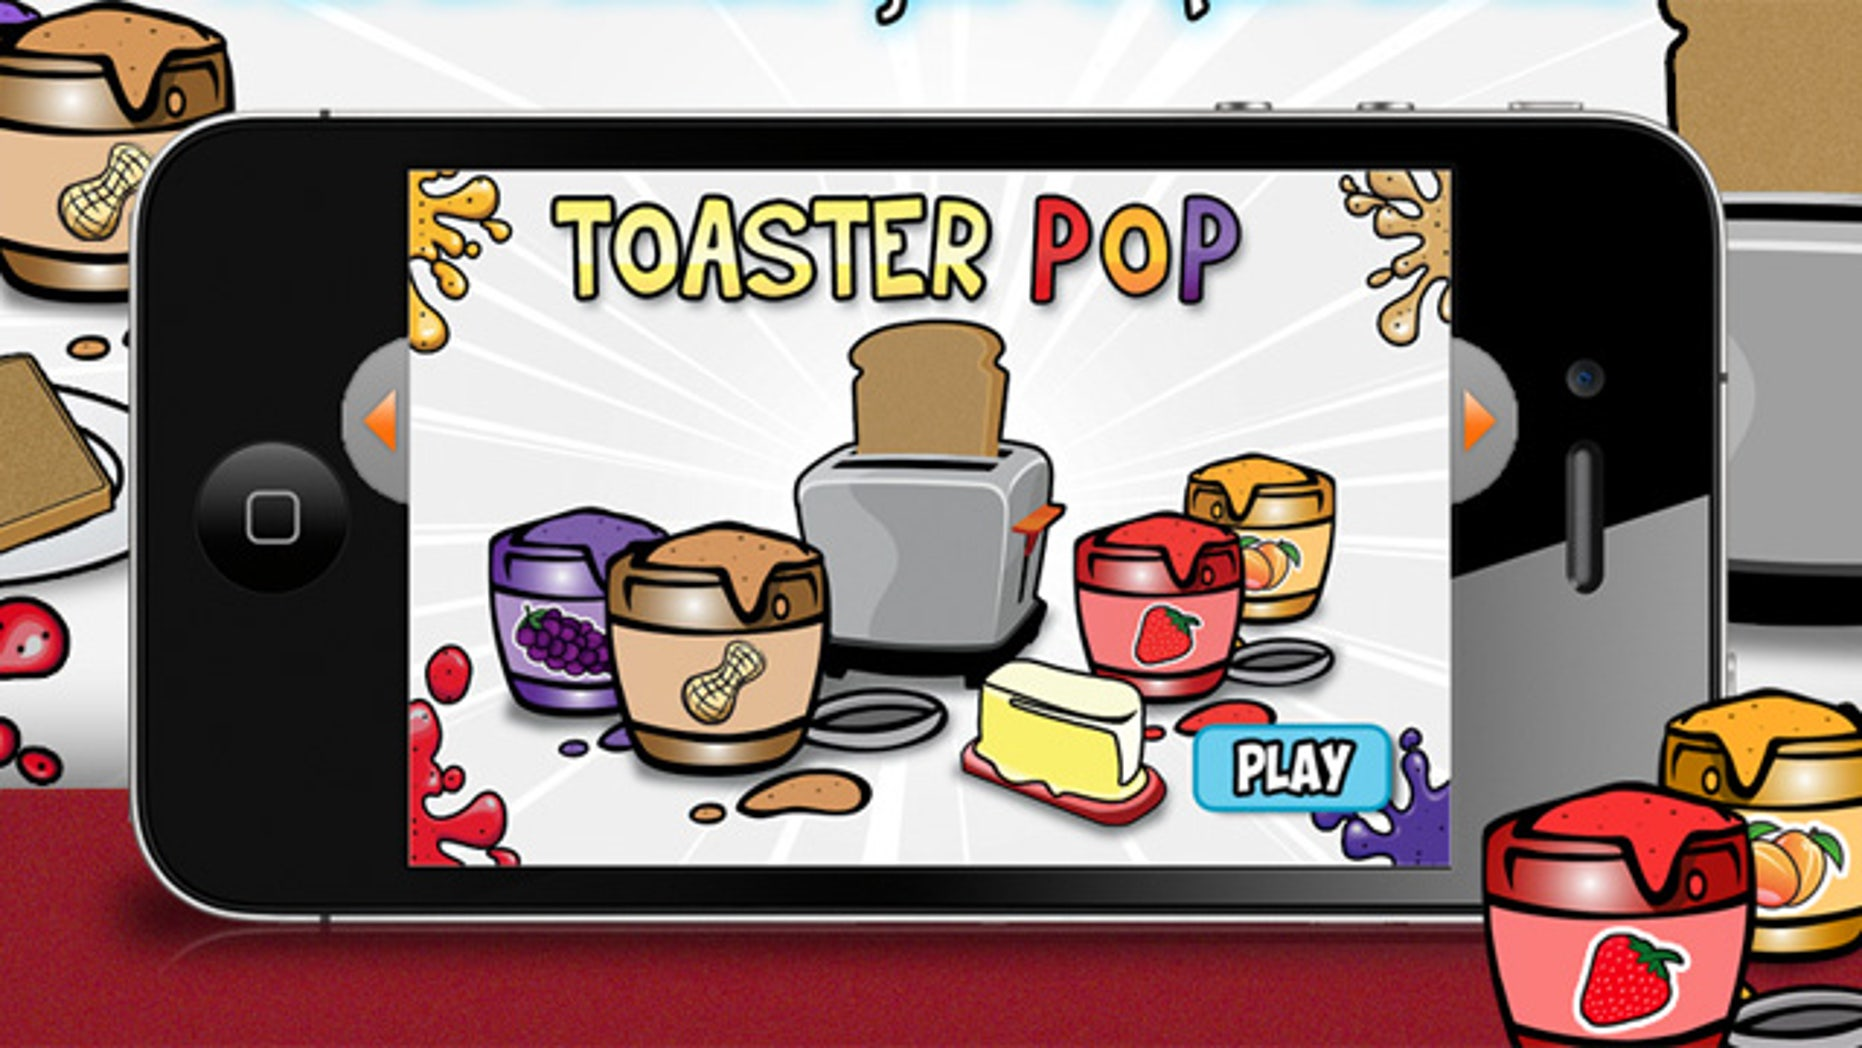 The work of 7-year-old Connor Zamary, Toaster Pop is a 99-cent iPhone game available in the Apple App Store.